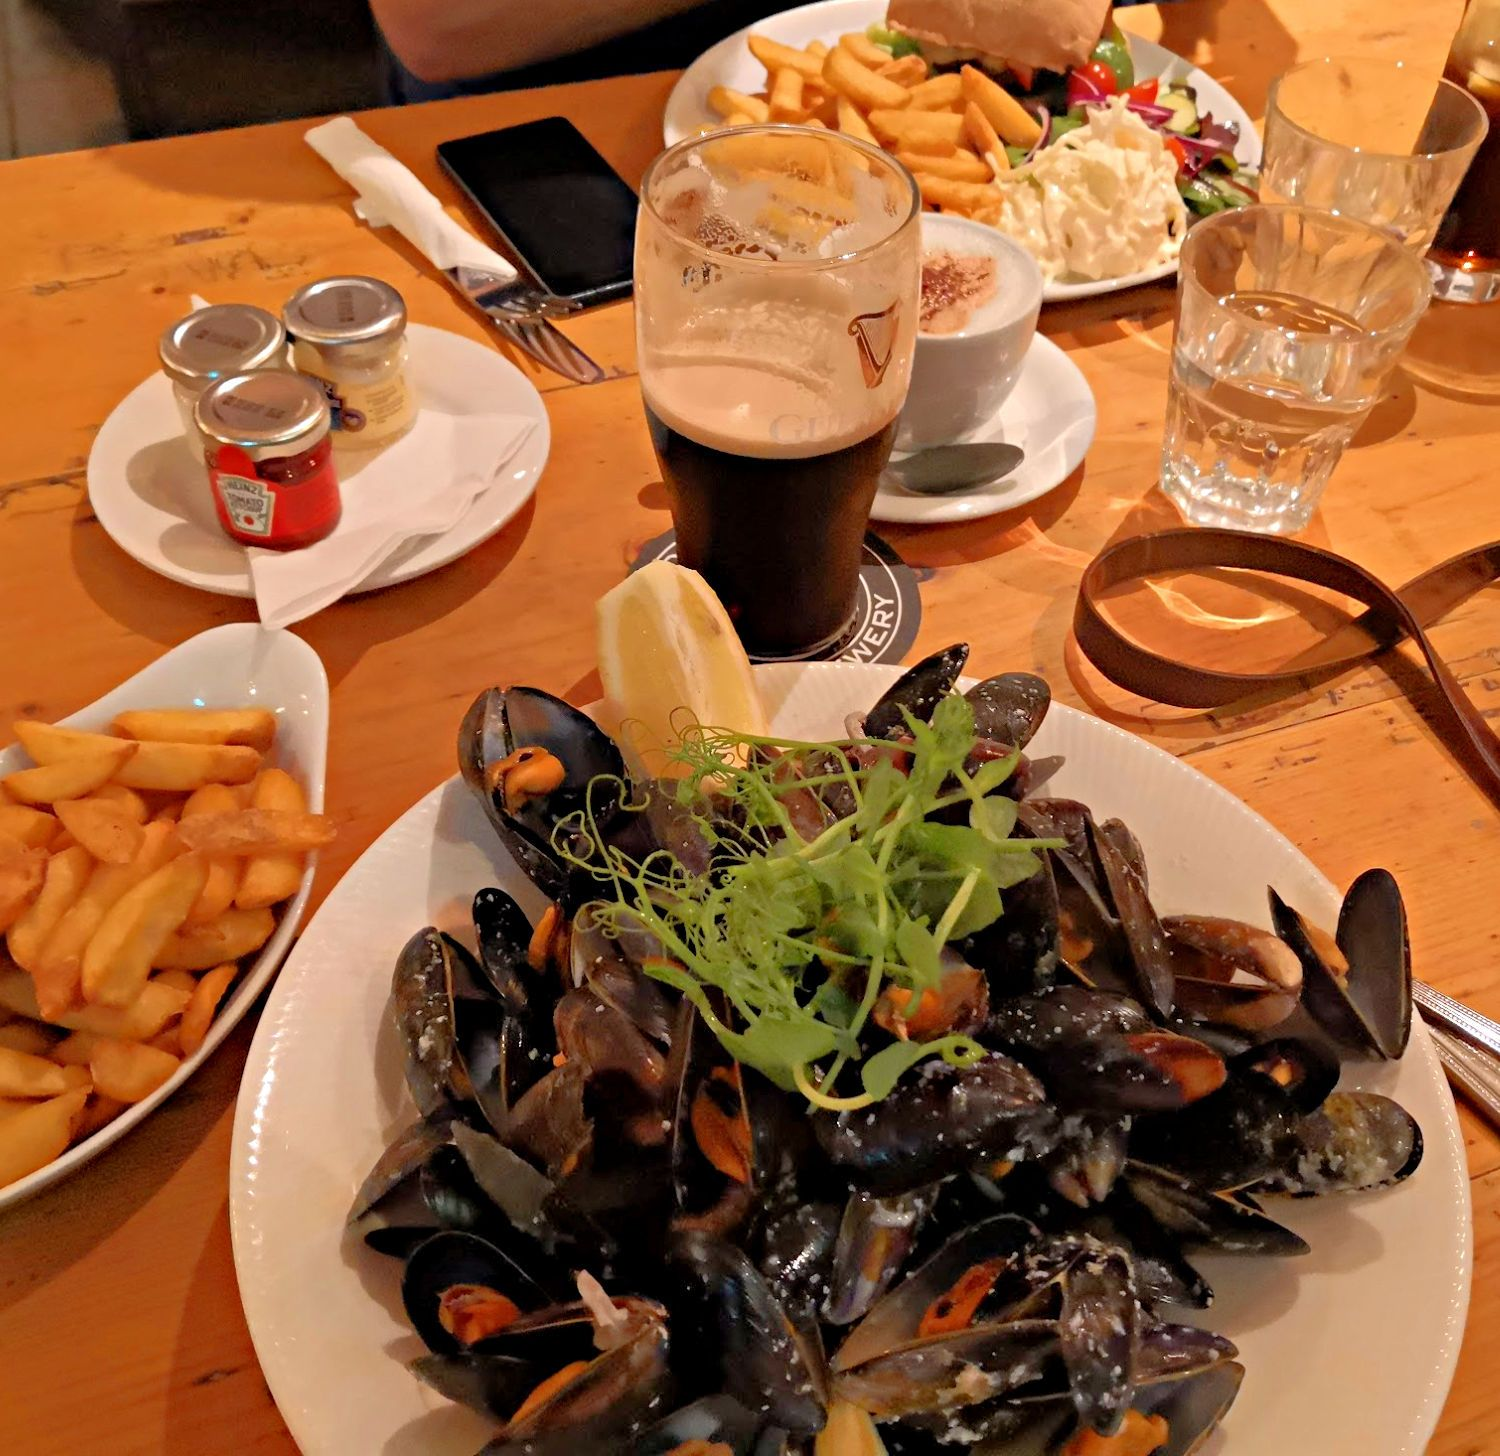 Mussels and a pint of Guinness in Guy's Bar in Clifden, Co Galway. Now, what could be better at 3 o' clock in a sunny afternoon?